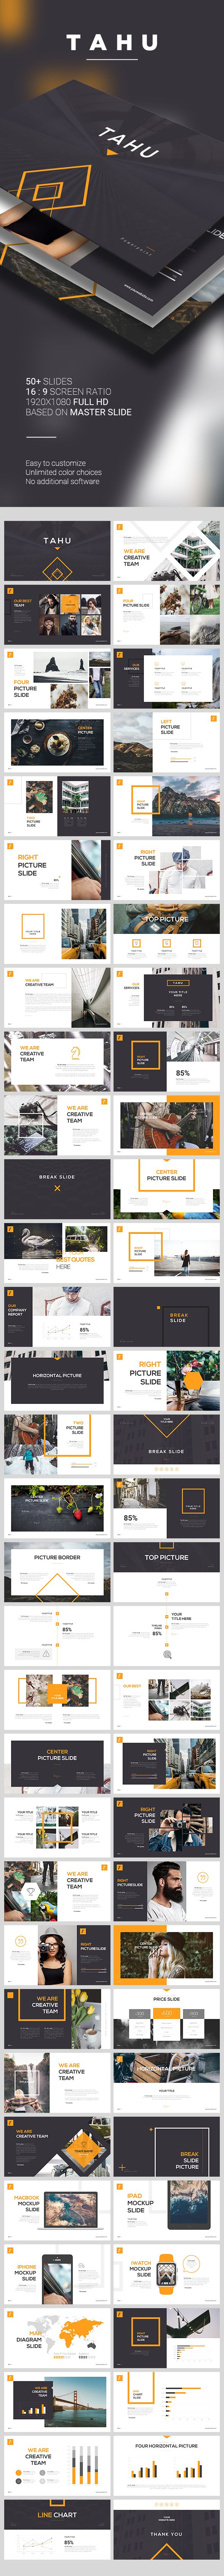 TAHU PowerPoint Template. Download here: http://graphicriver.net/item/tahu-powerpoint-template/16692467?ref=ksioks